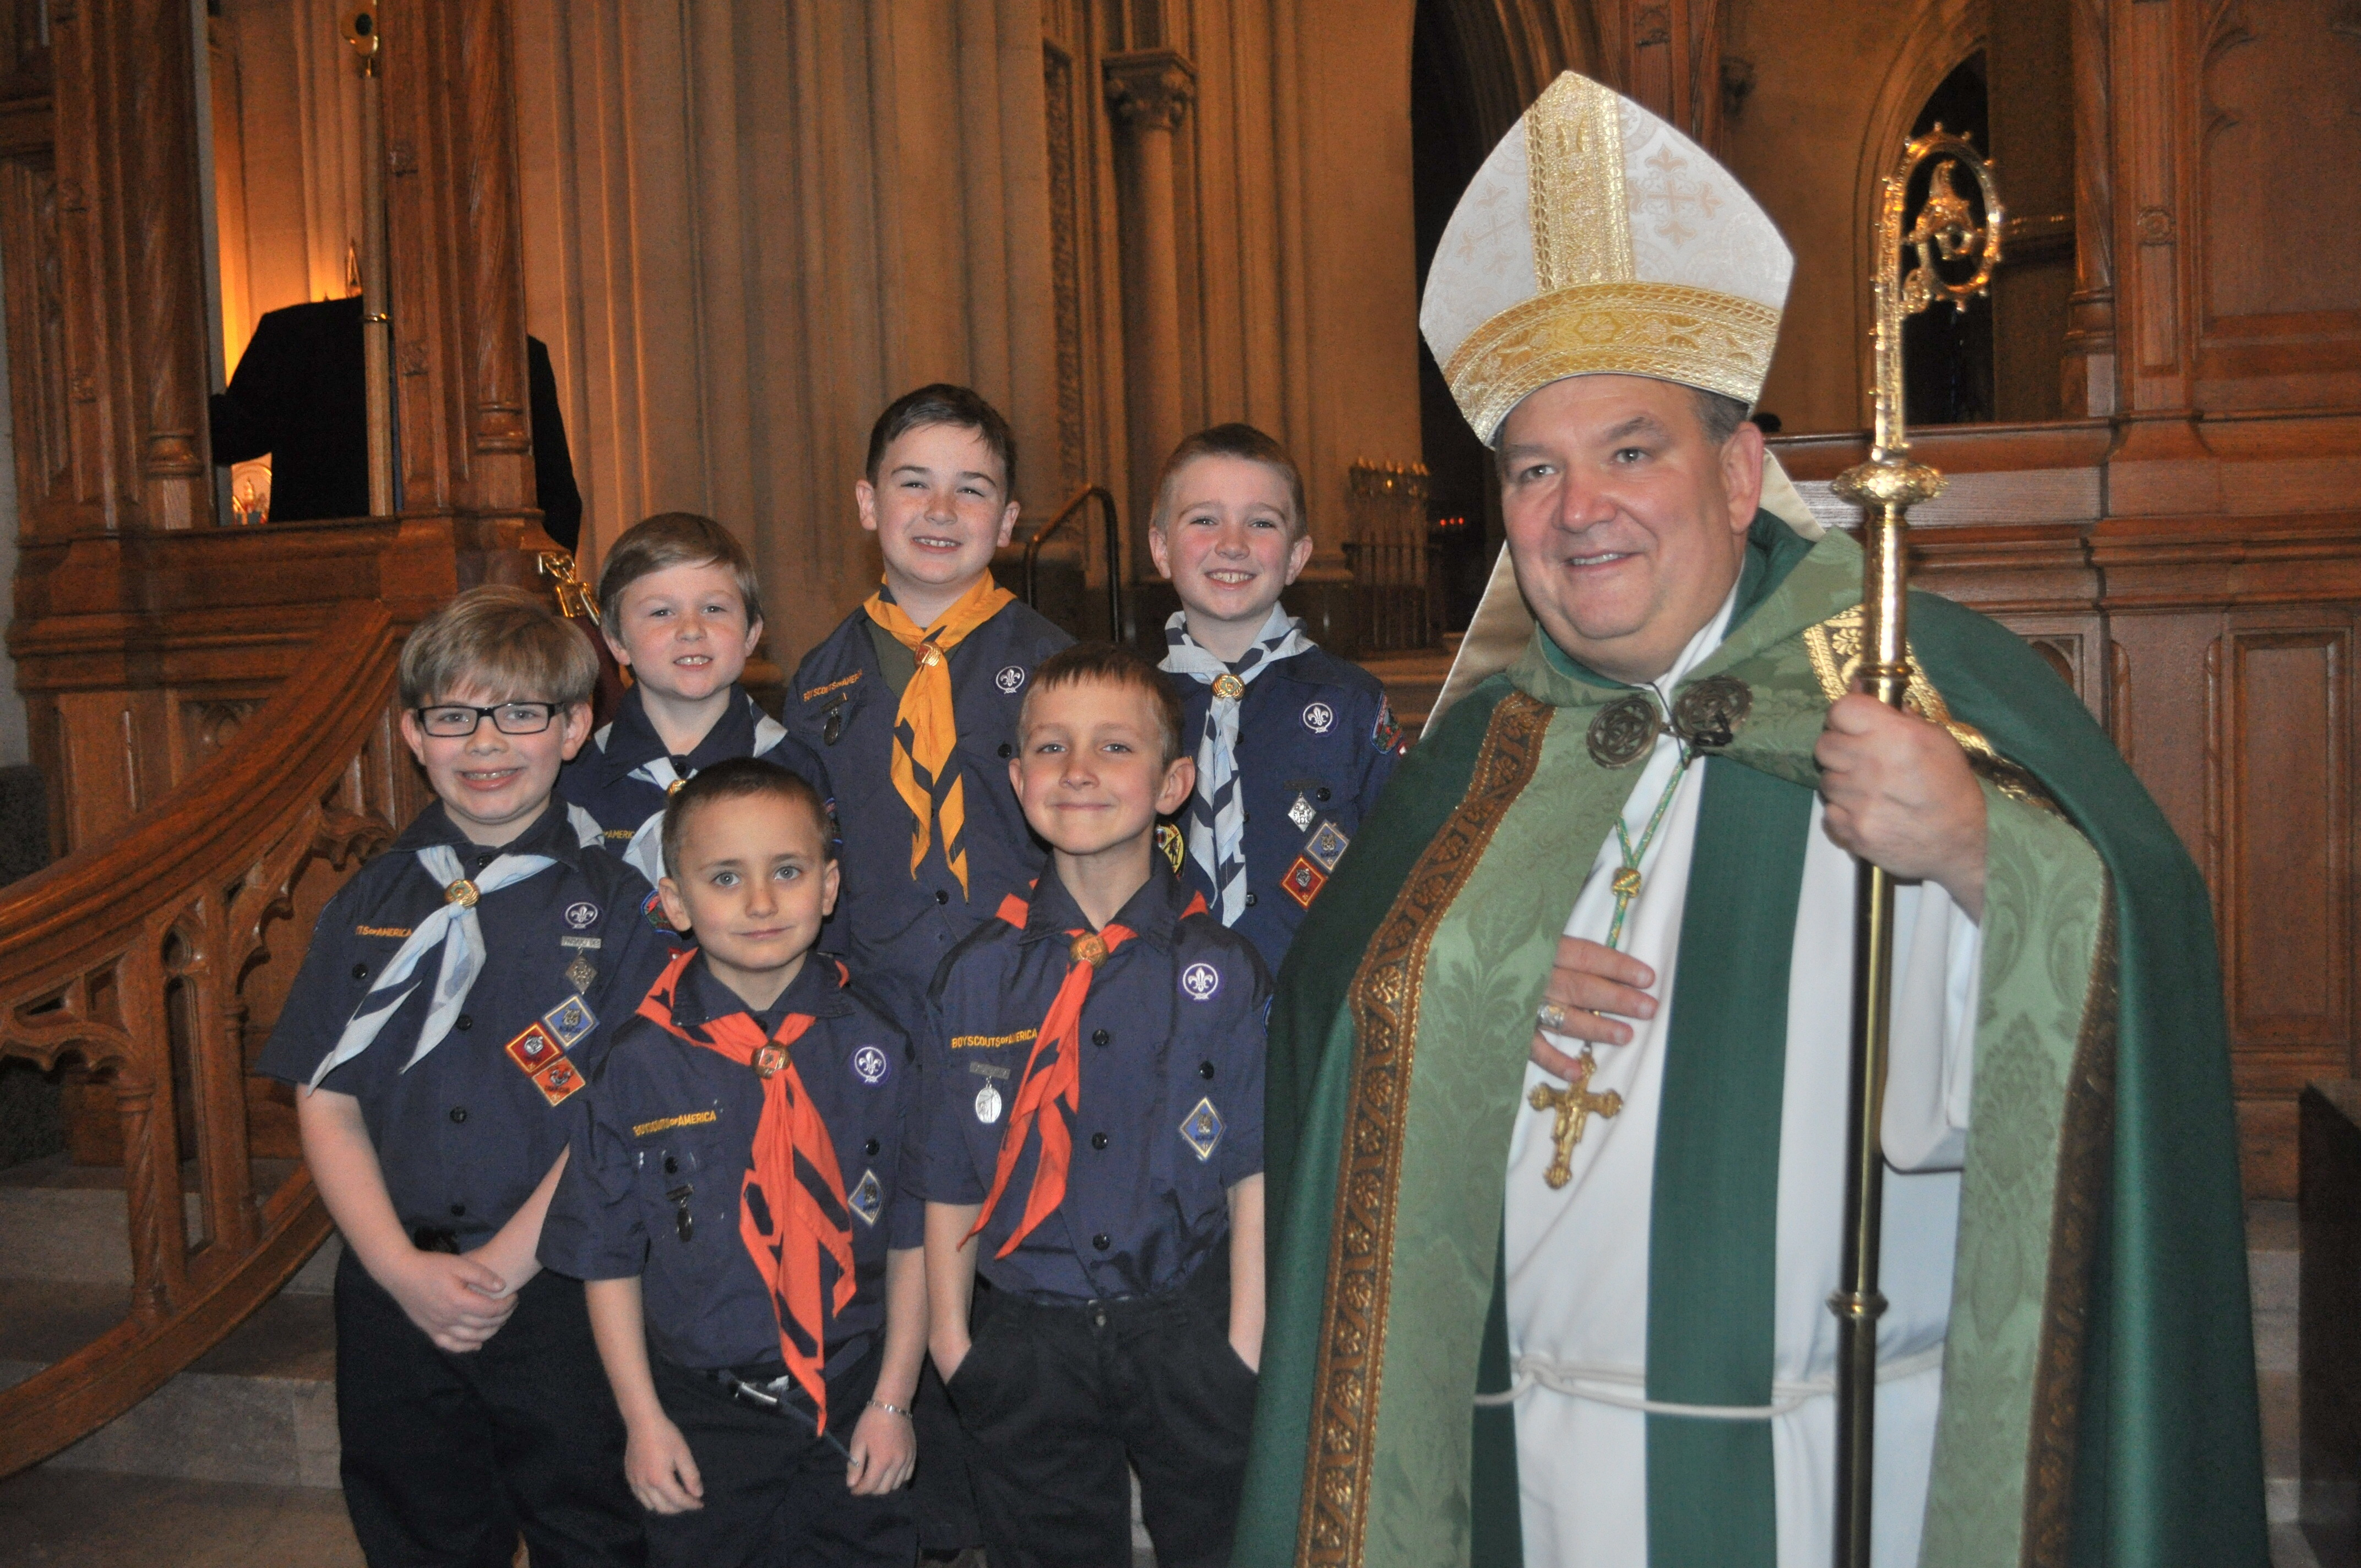 123998deca43f6416110_HTIS_scouts_with_Archbishop_Hebda__1___1_.JPG